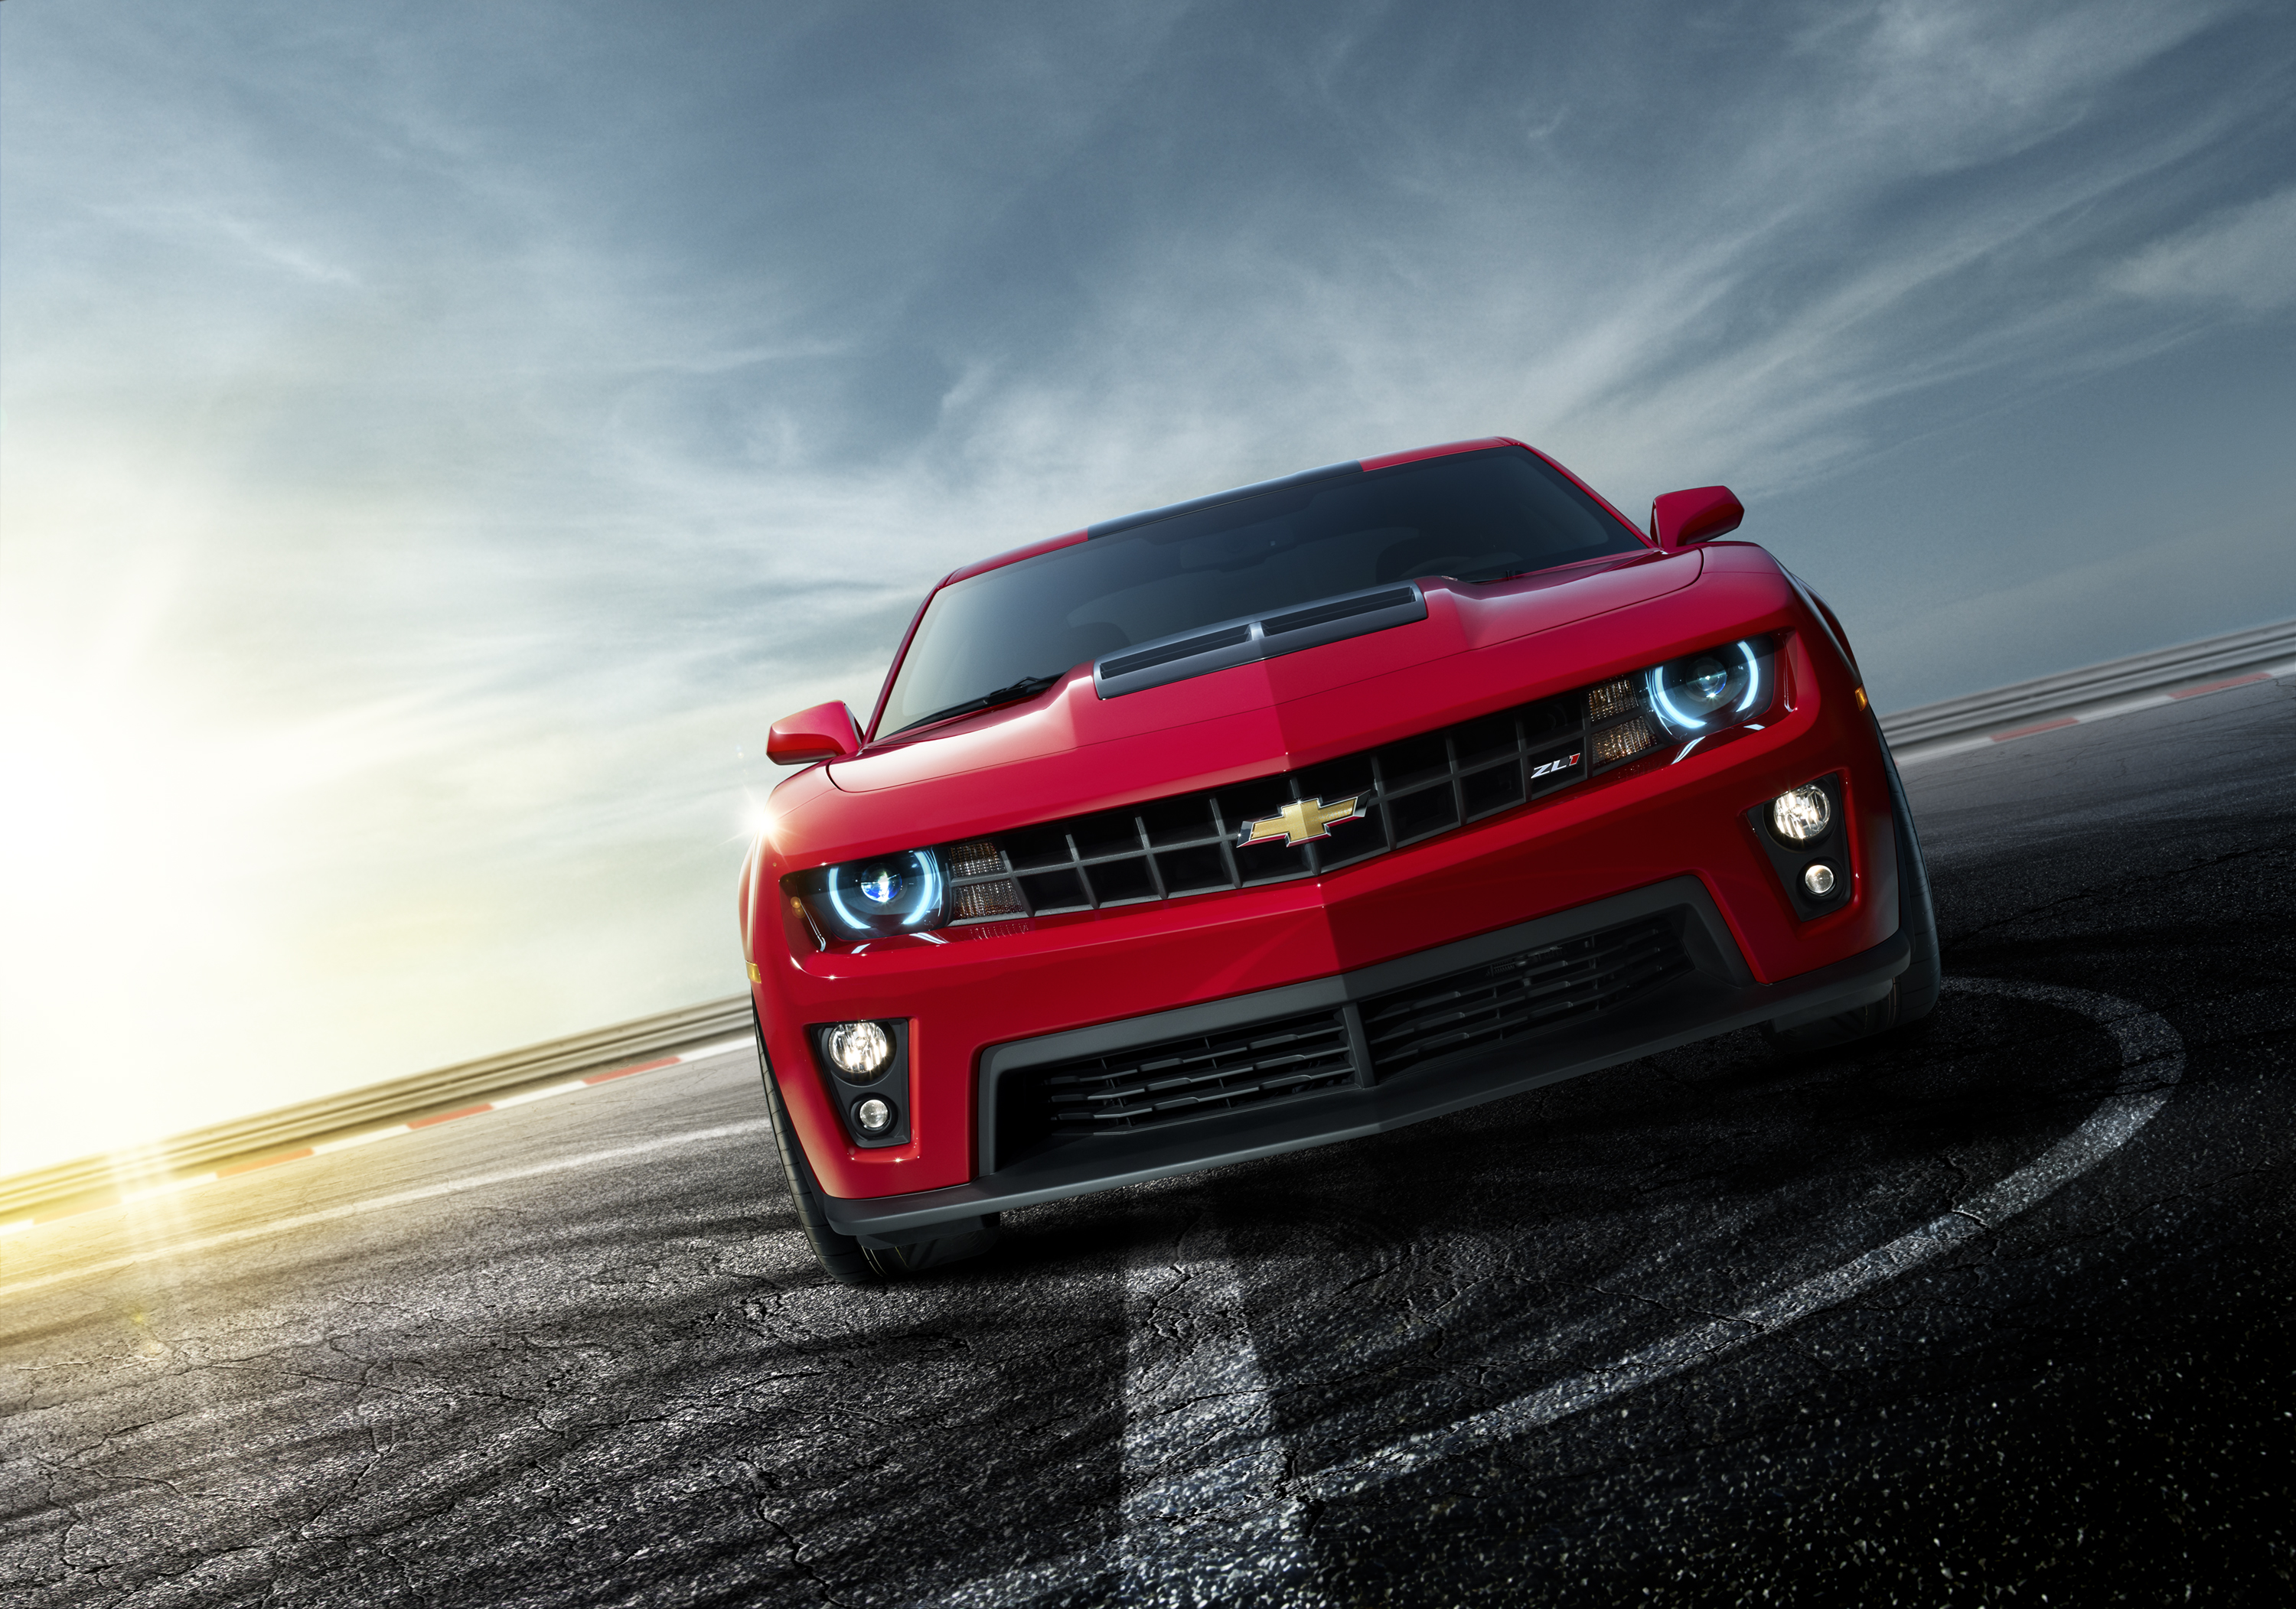 2012 Camaro Zl1 Wallpapers High Resolution Camaro5 Chevy Camaro Forum Camaro Zl1 Ss And